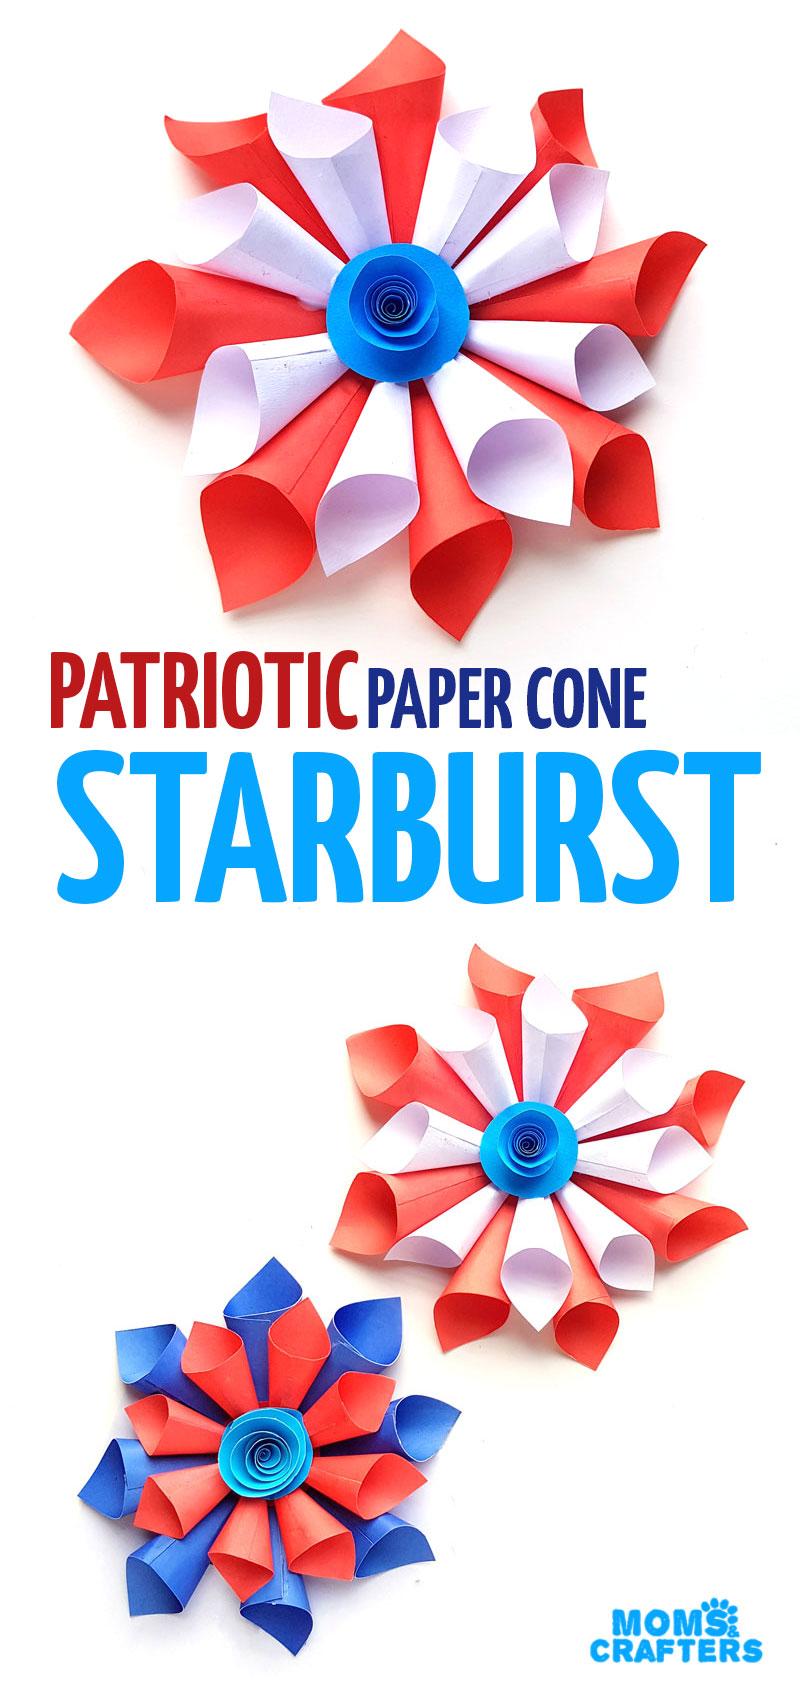 Make some DIY paper 4th of July Decorations and patriotic paper cone starburst wreath! These red white and blue paper decorations are perfect for Independence day picnics and fun crafts for eveyone.